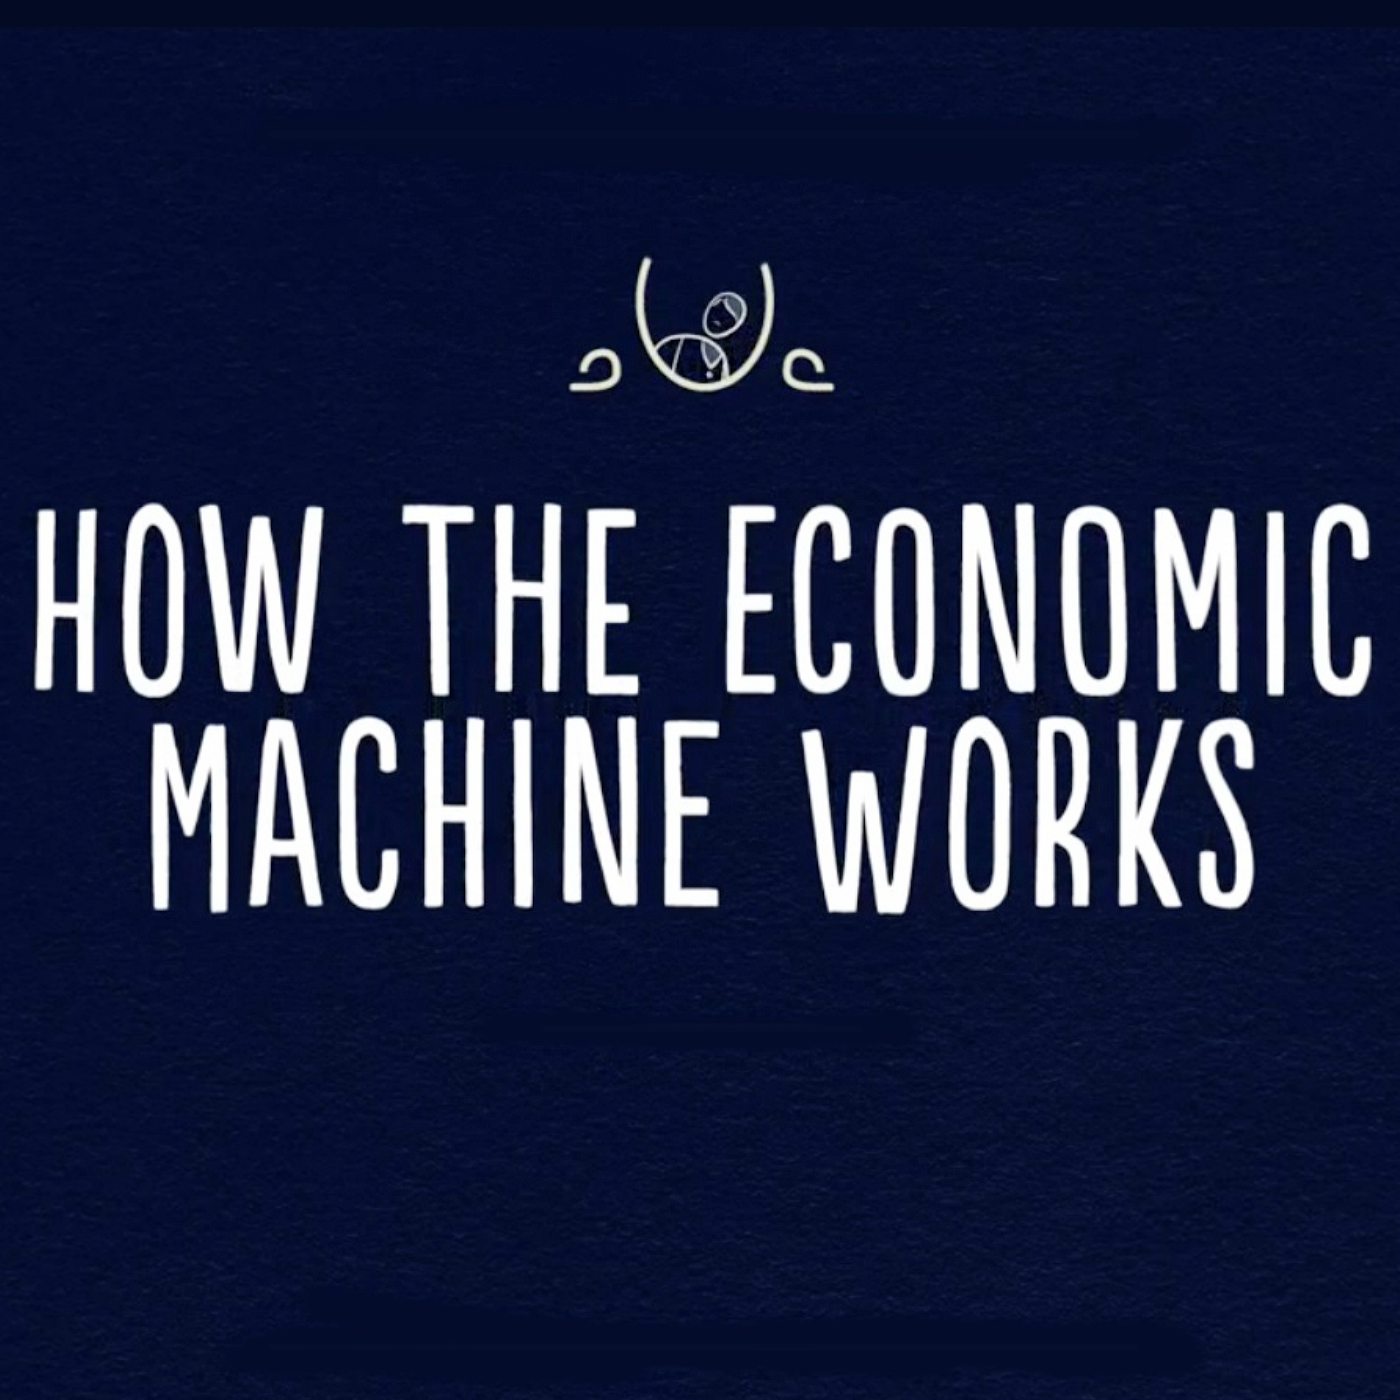 How the Economic Machine Works